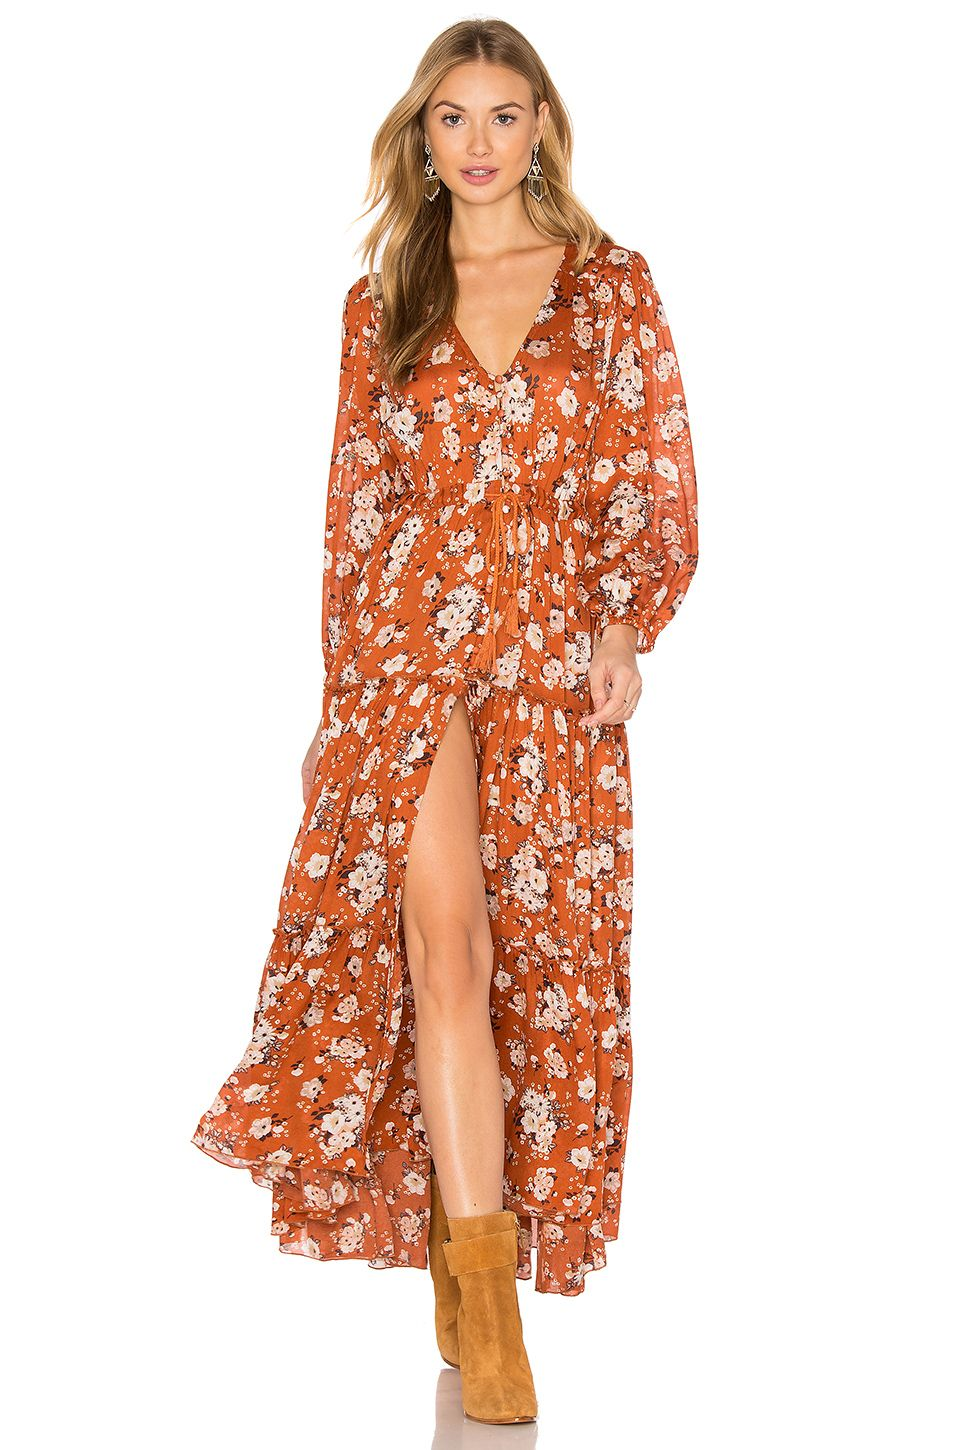 038261709a Spell & The Gypsy Collective Gypsy Dancer Dress in Maple | REVOLVE ...